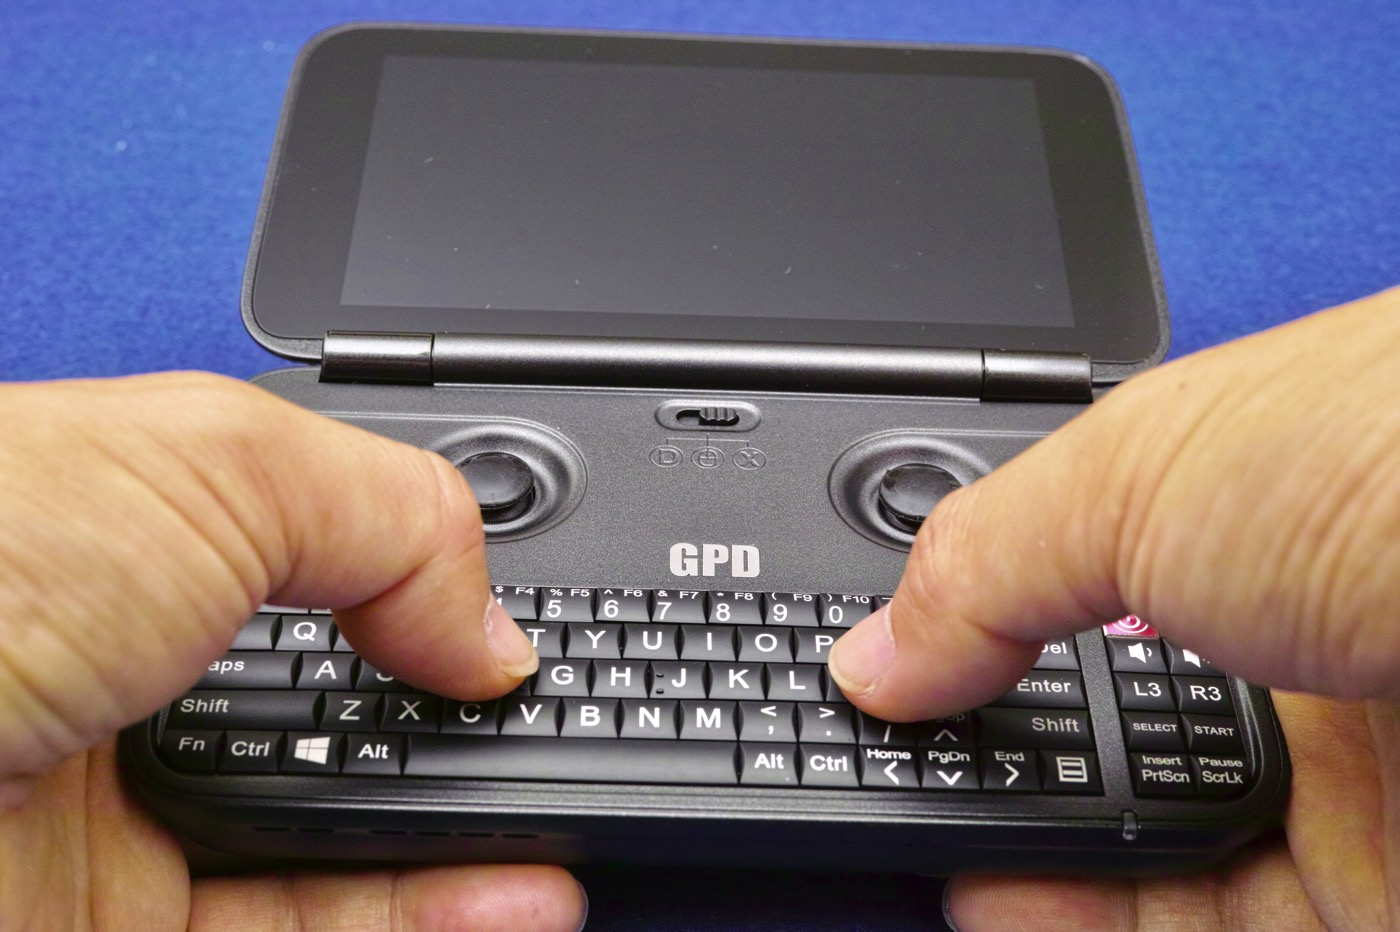 Gpd win sticky key 00002